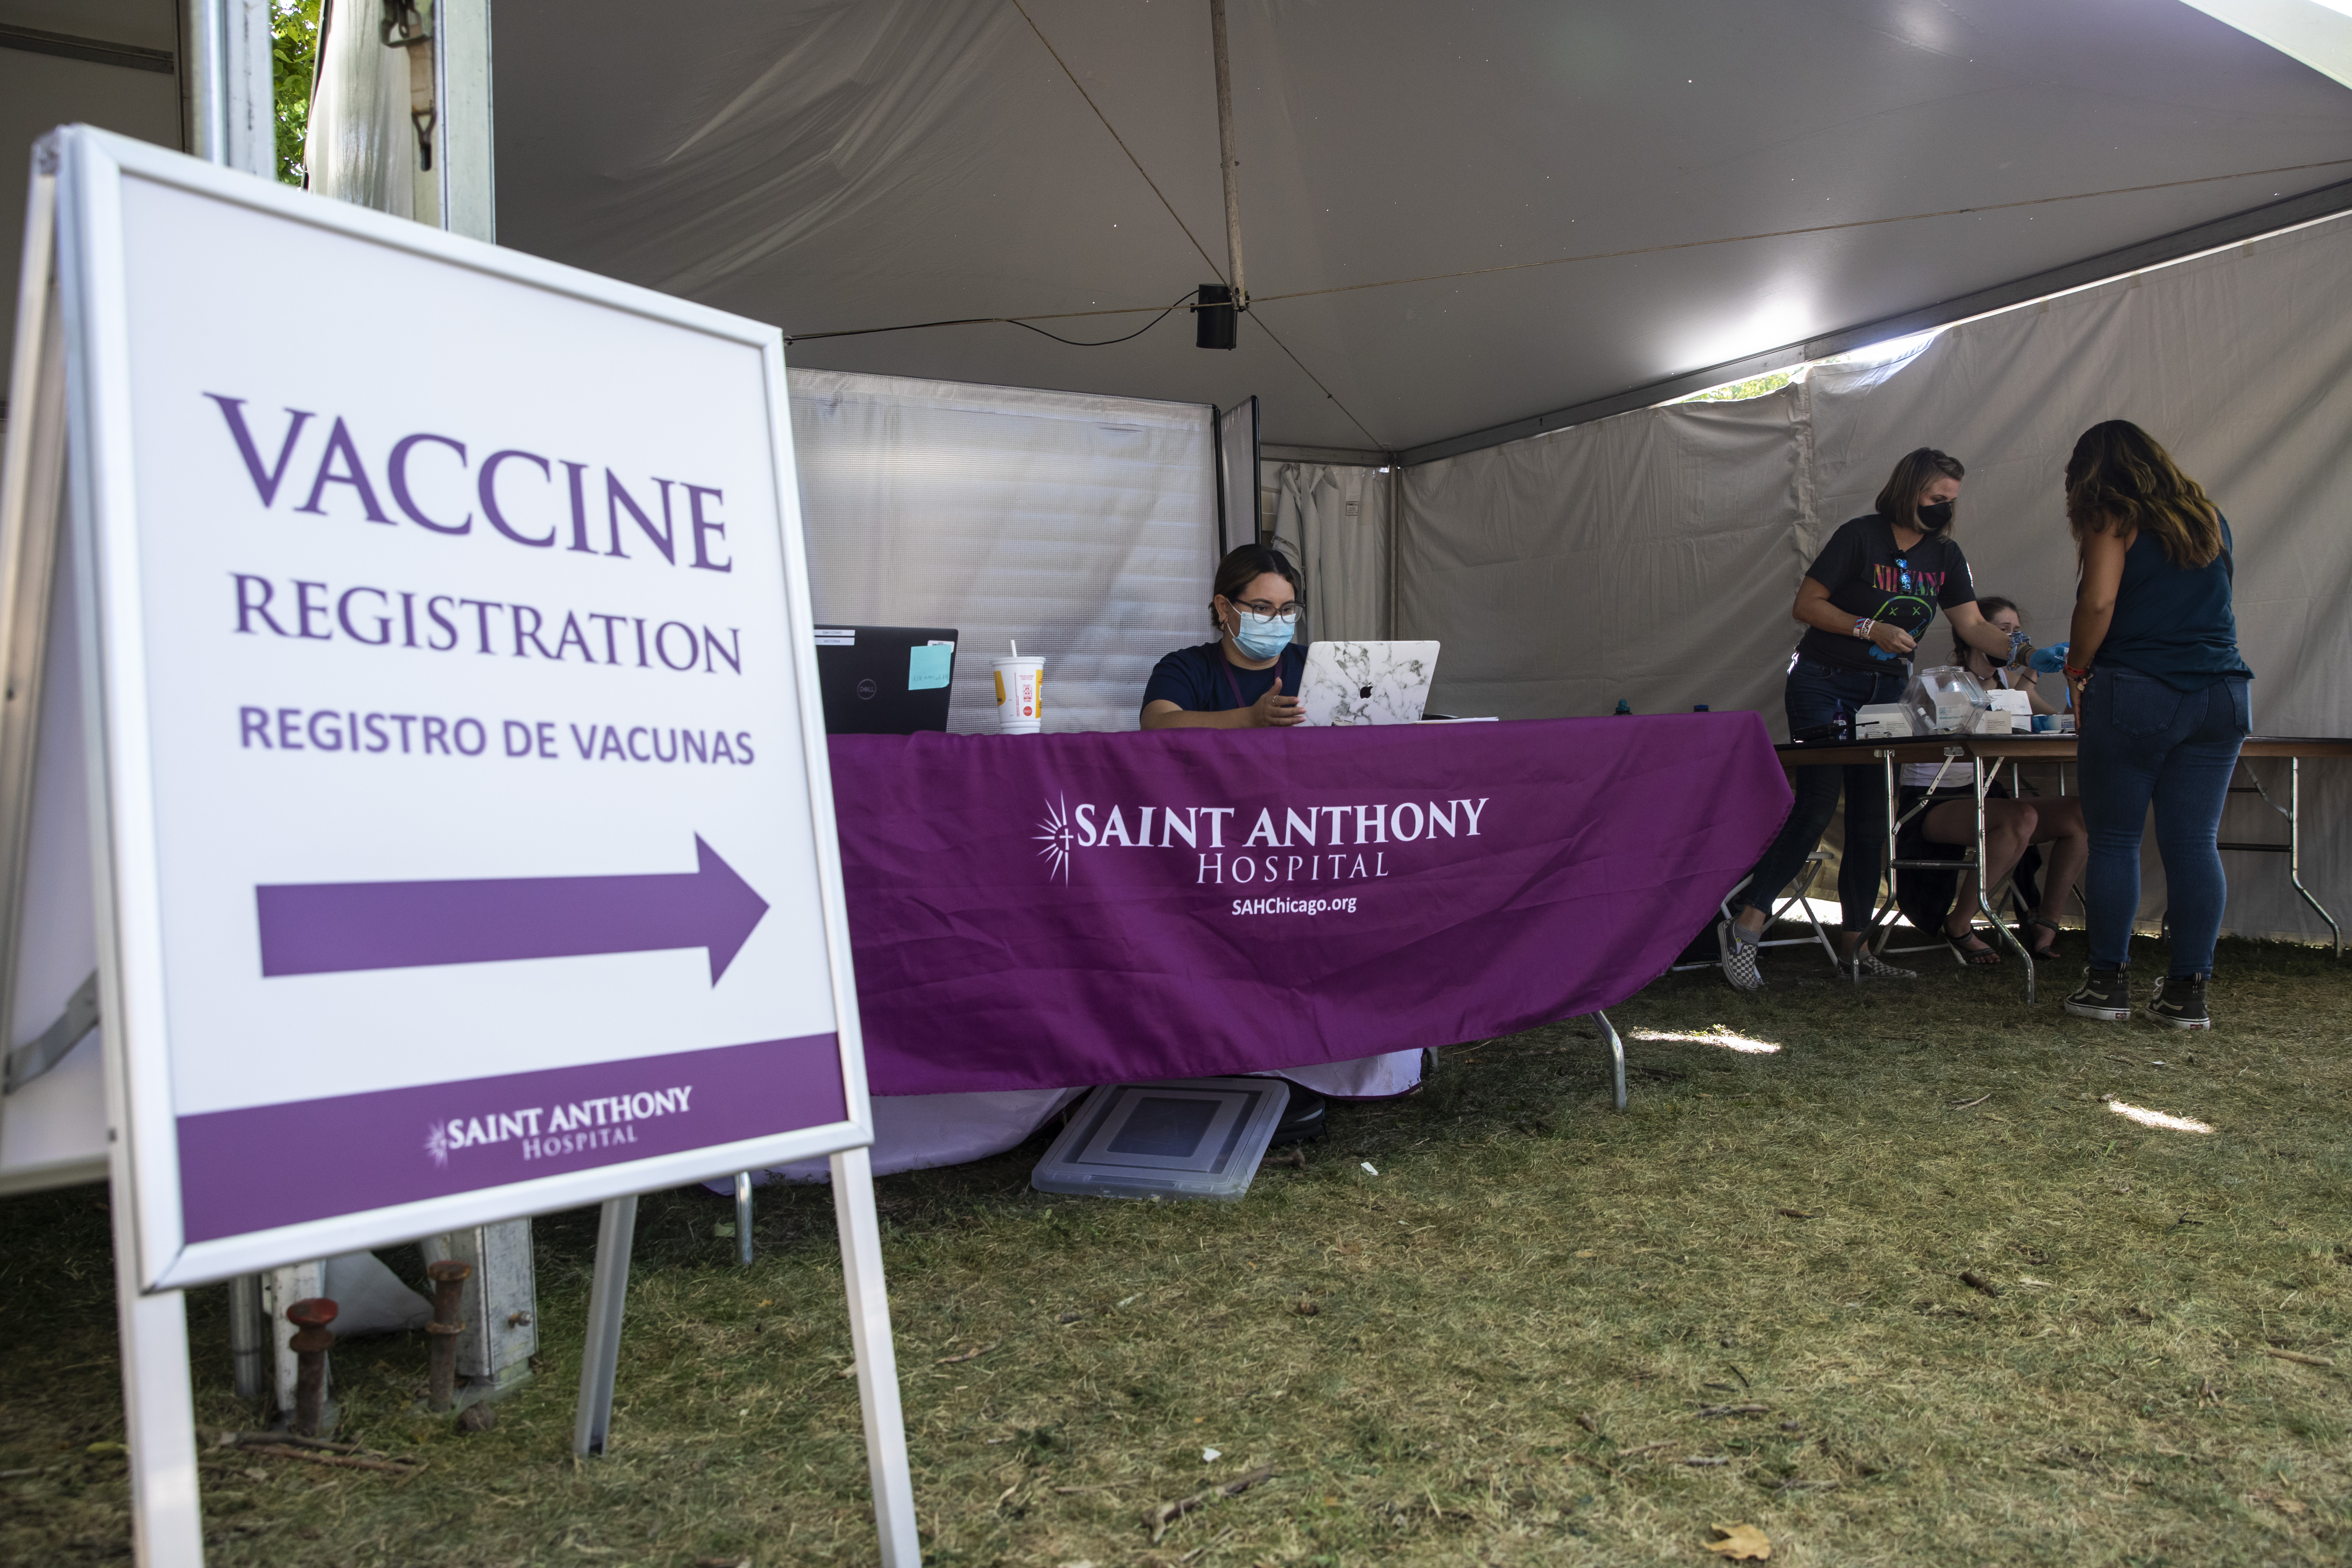 Saint Anthony Hospital offers both the Pfizer and J&J COVID-19 vaccines at the entrance to Riot Fest in Douglass Park. About 61% of Illinoisans 12 or older are fully vaccinated.